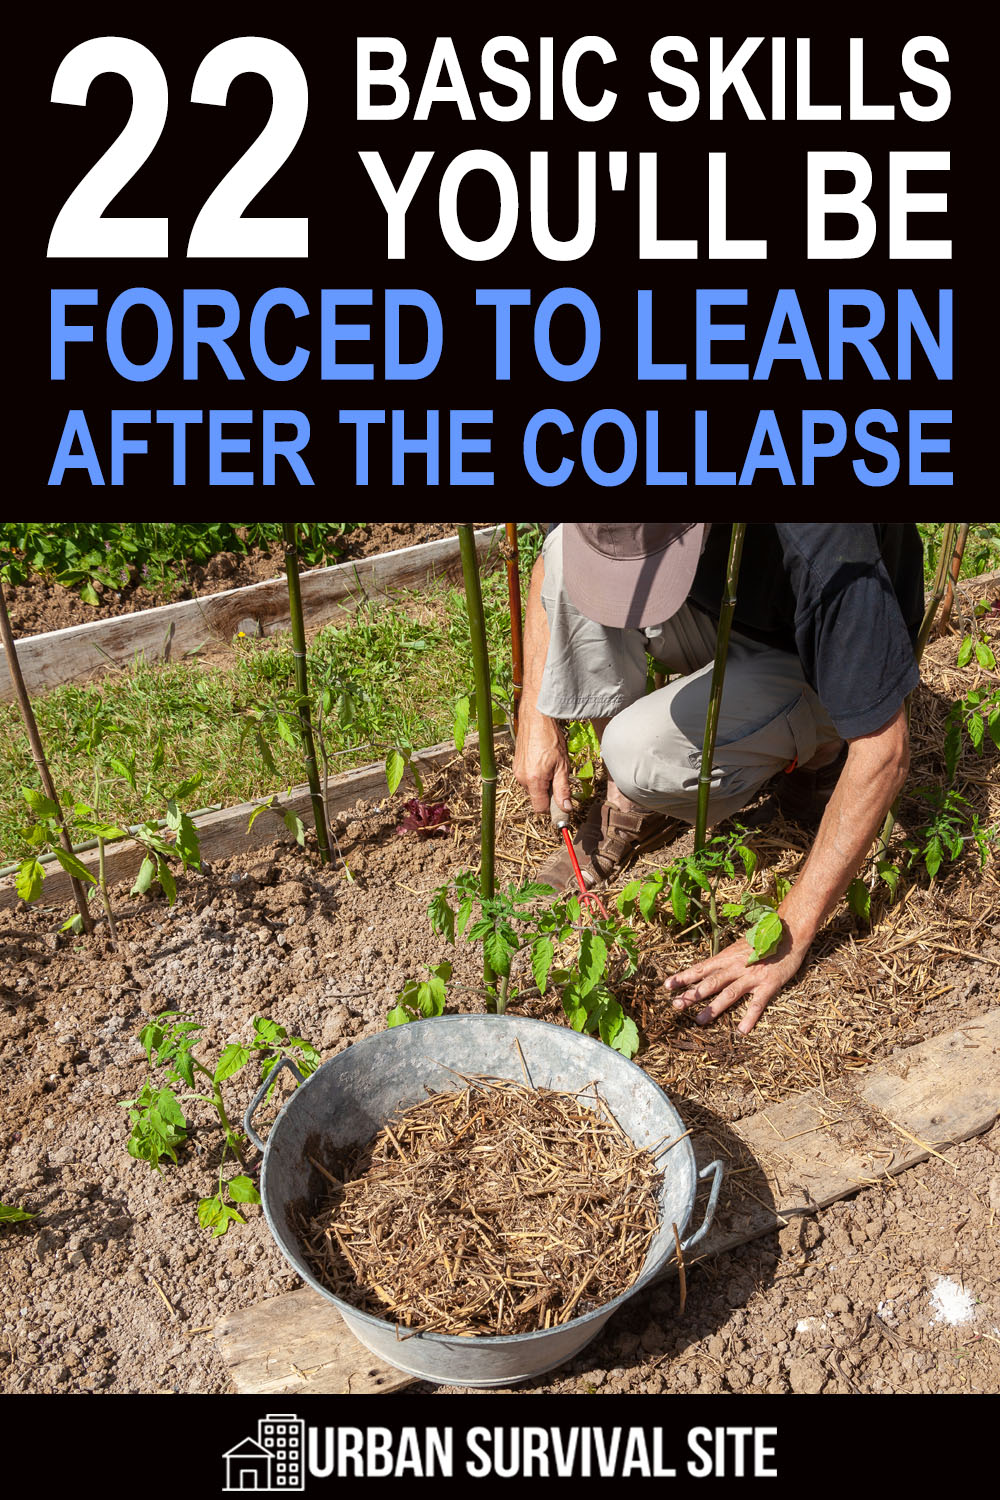 22 Basic Skills You'll Be Forced to Learn After the Collapse